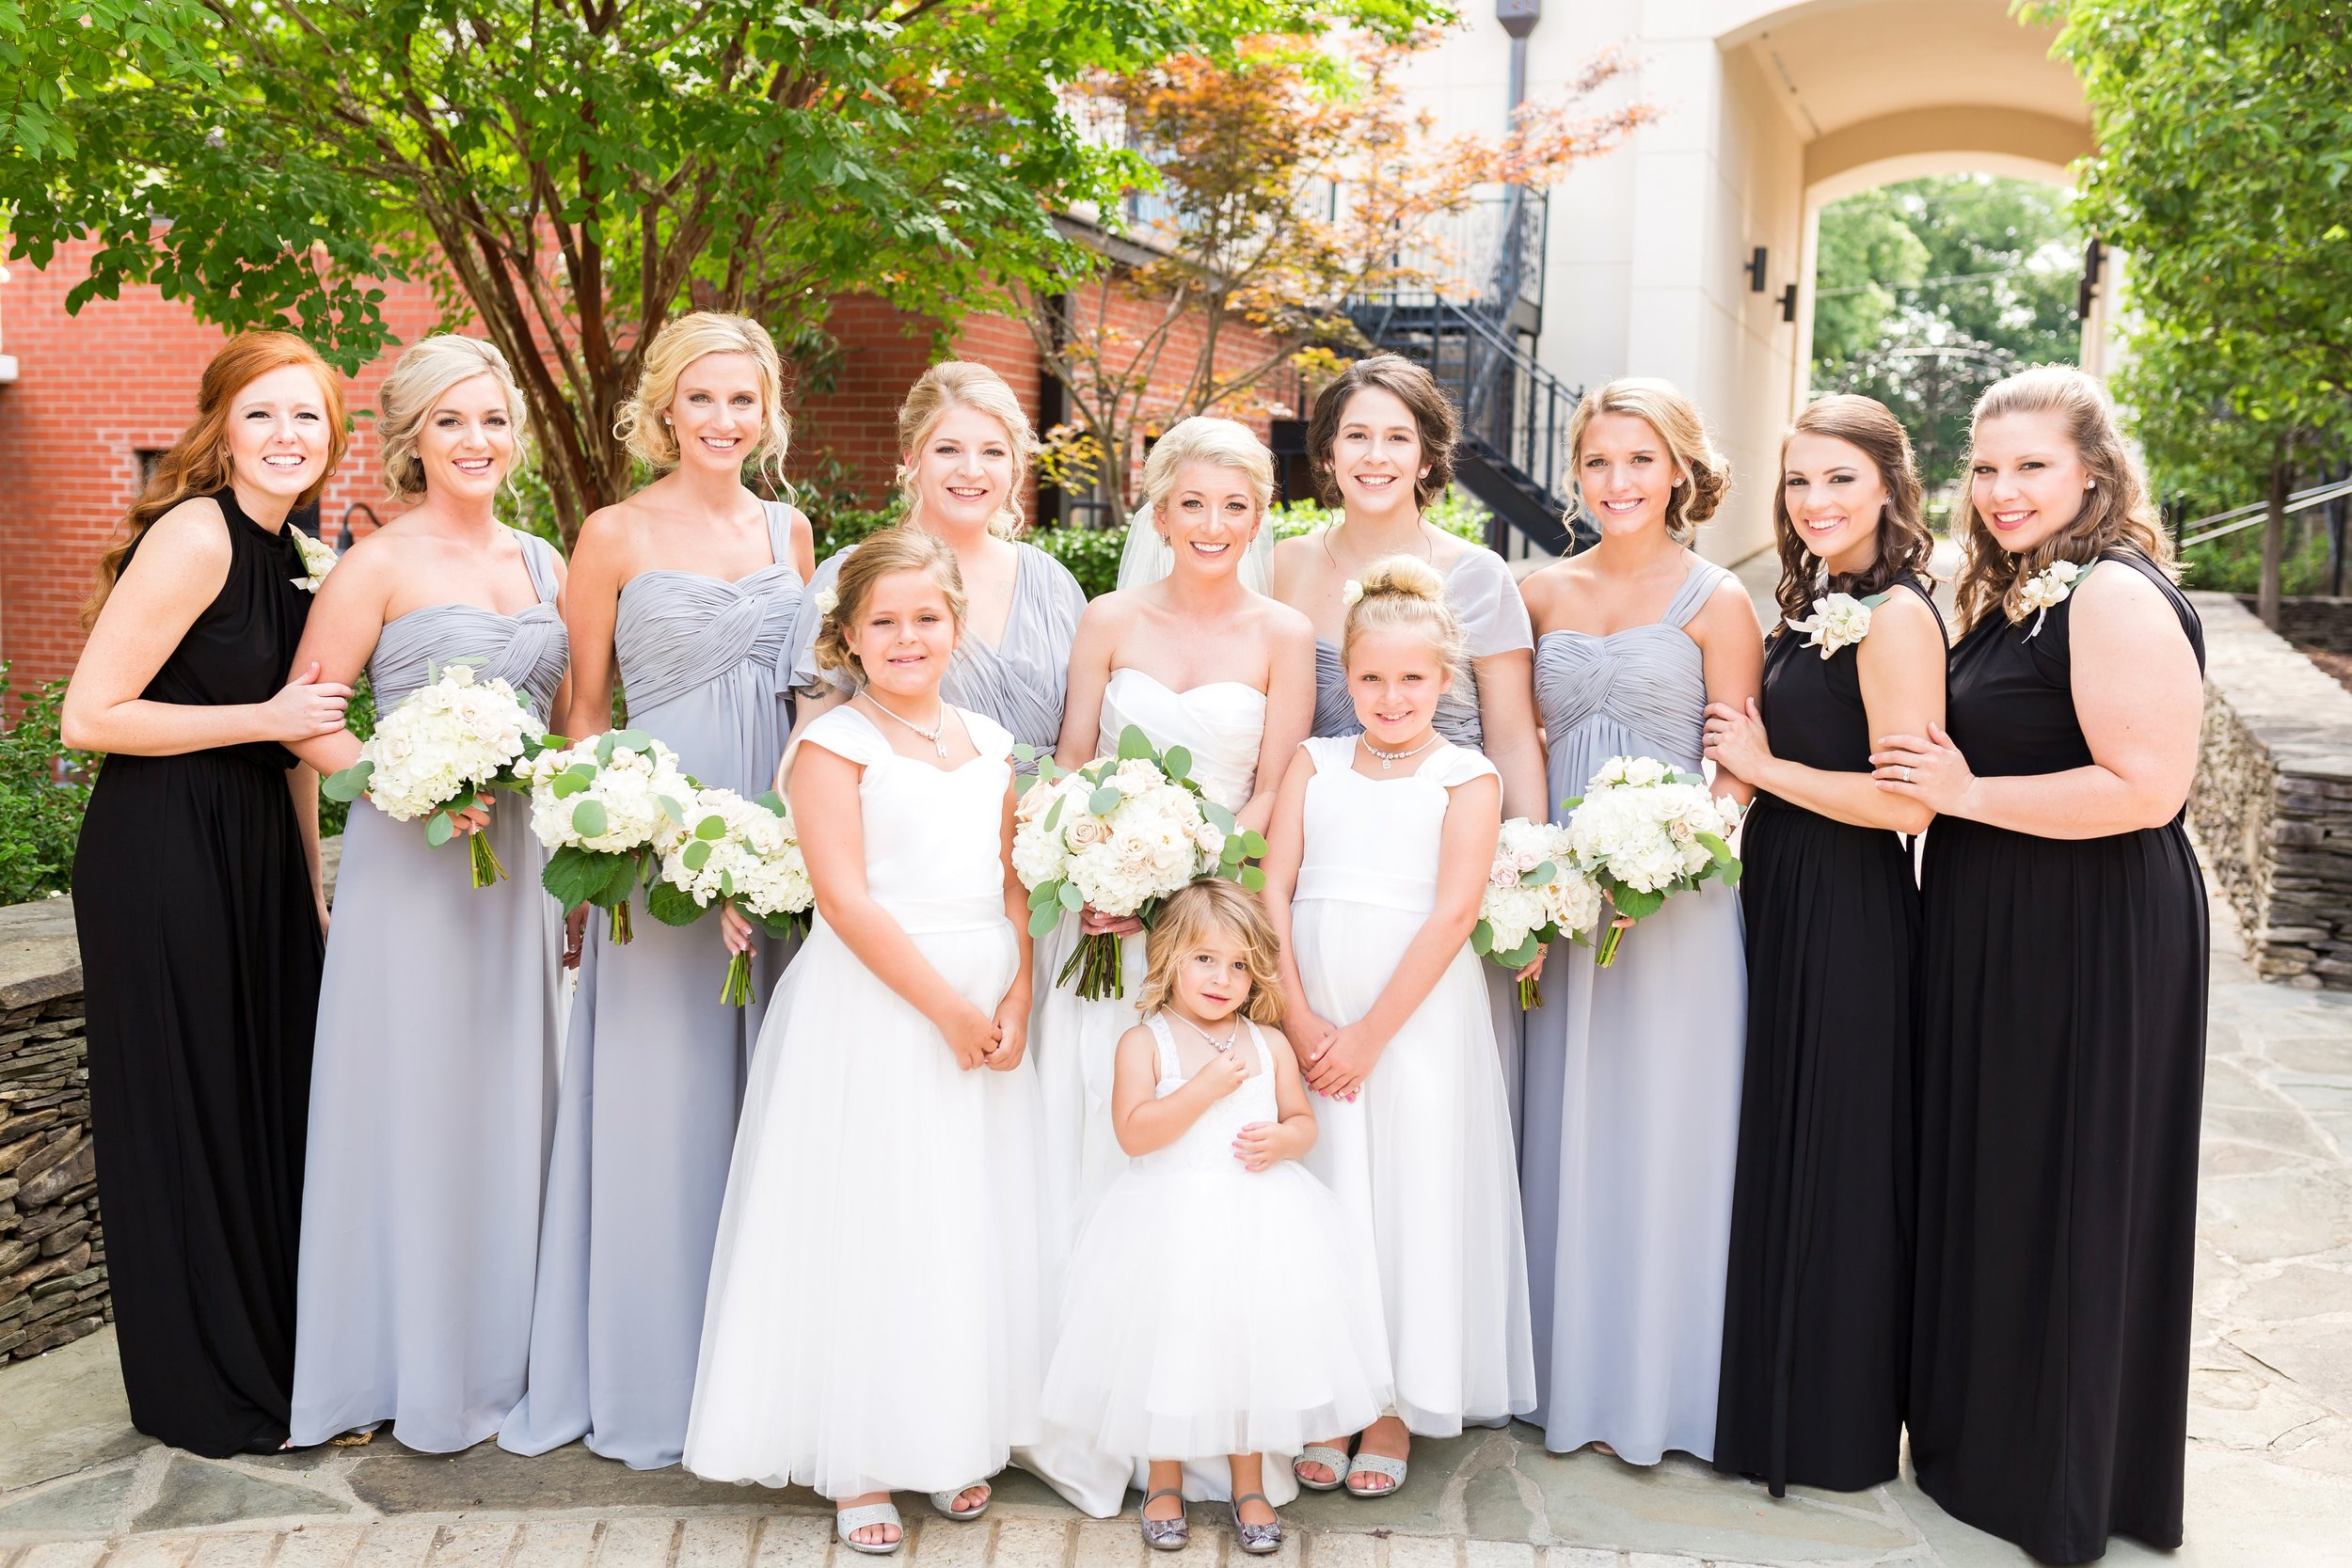 Greensboro_nc_wedding_photographer_Jodi_gray_colonnade-64.jpg